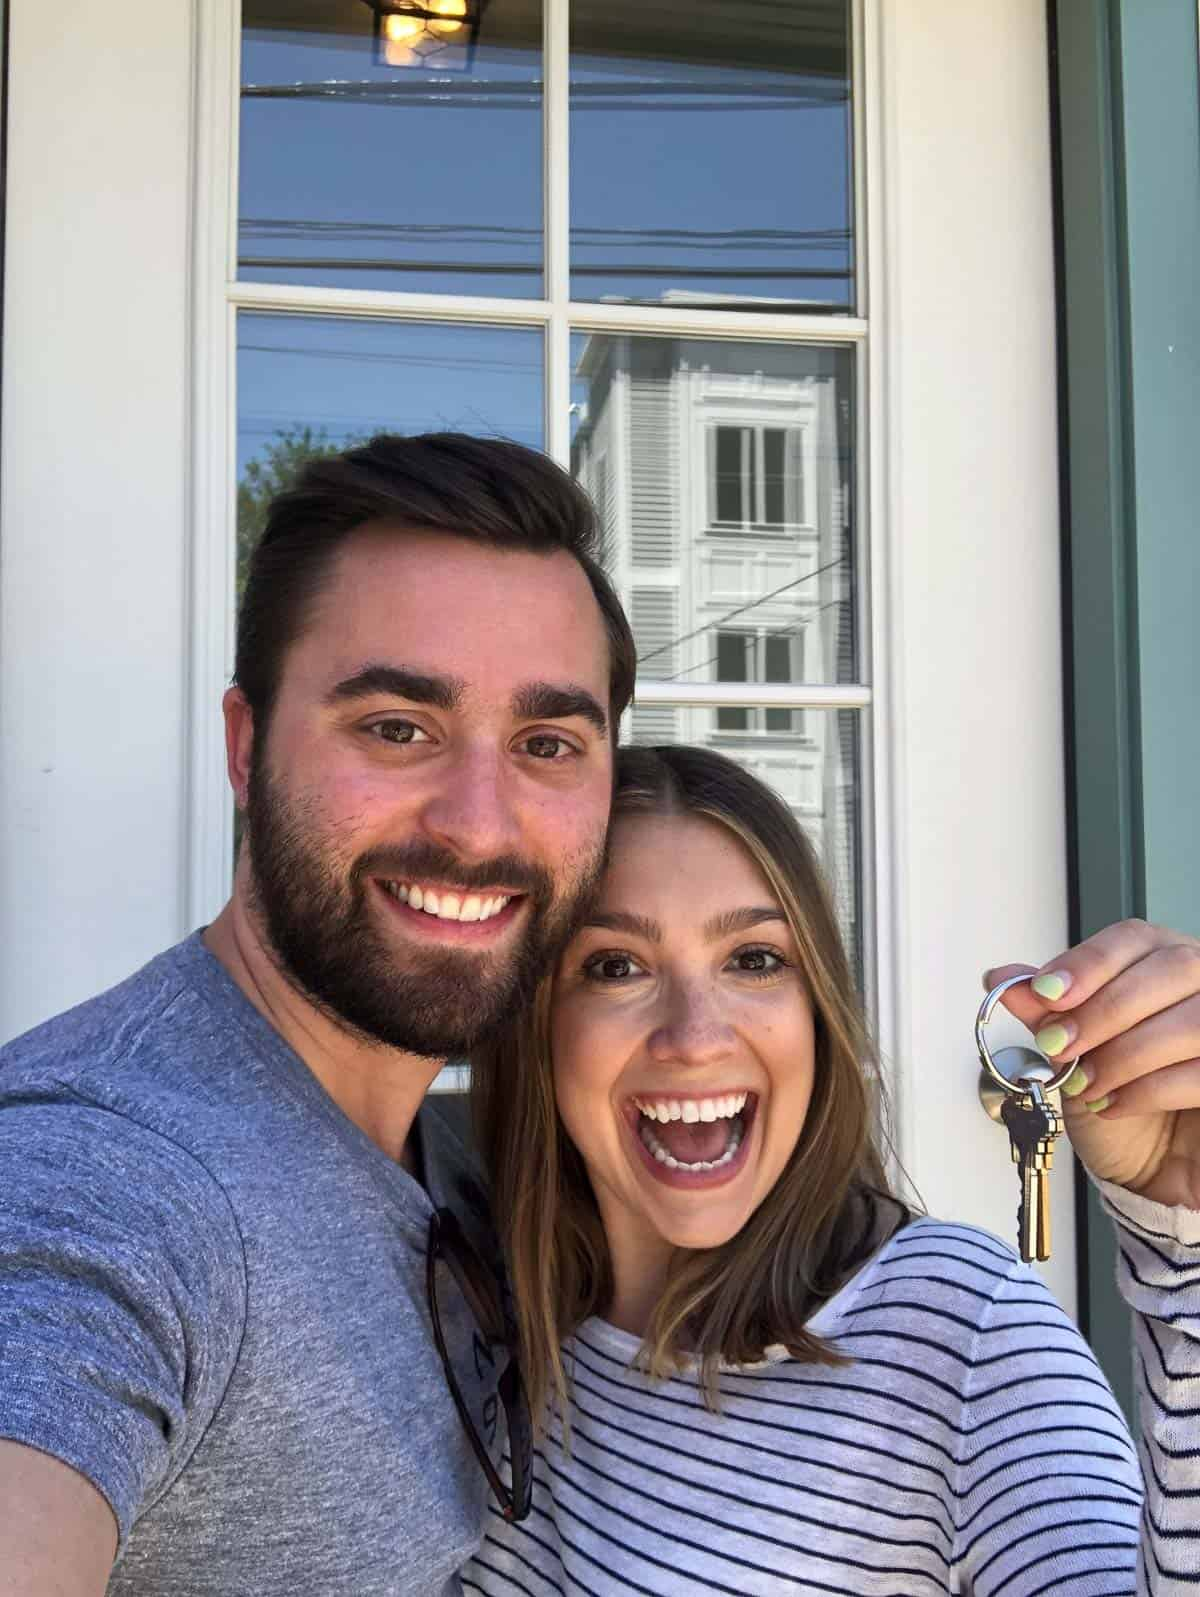 Kara and Steve holding the keys to their new home